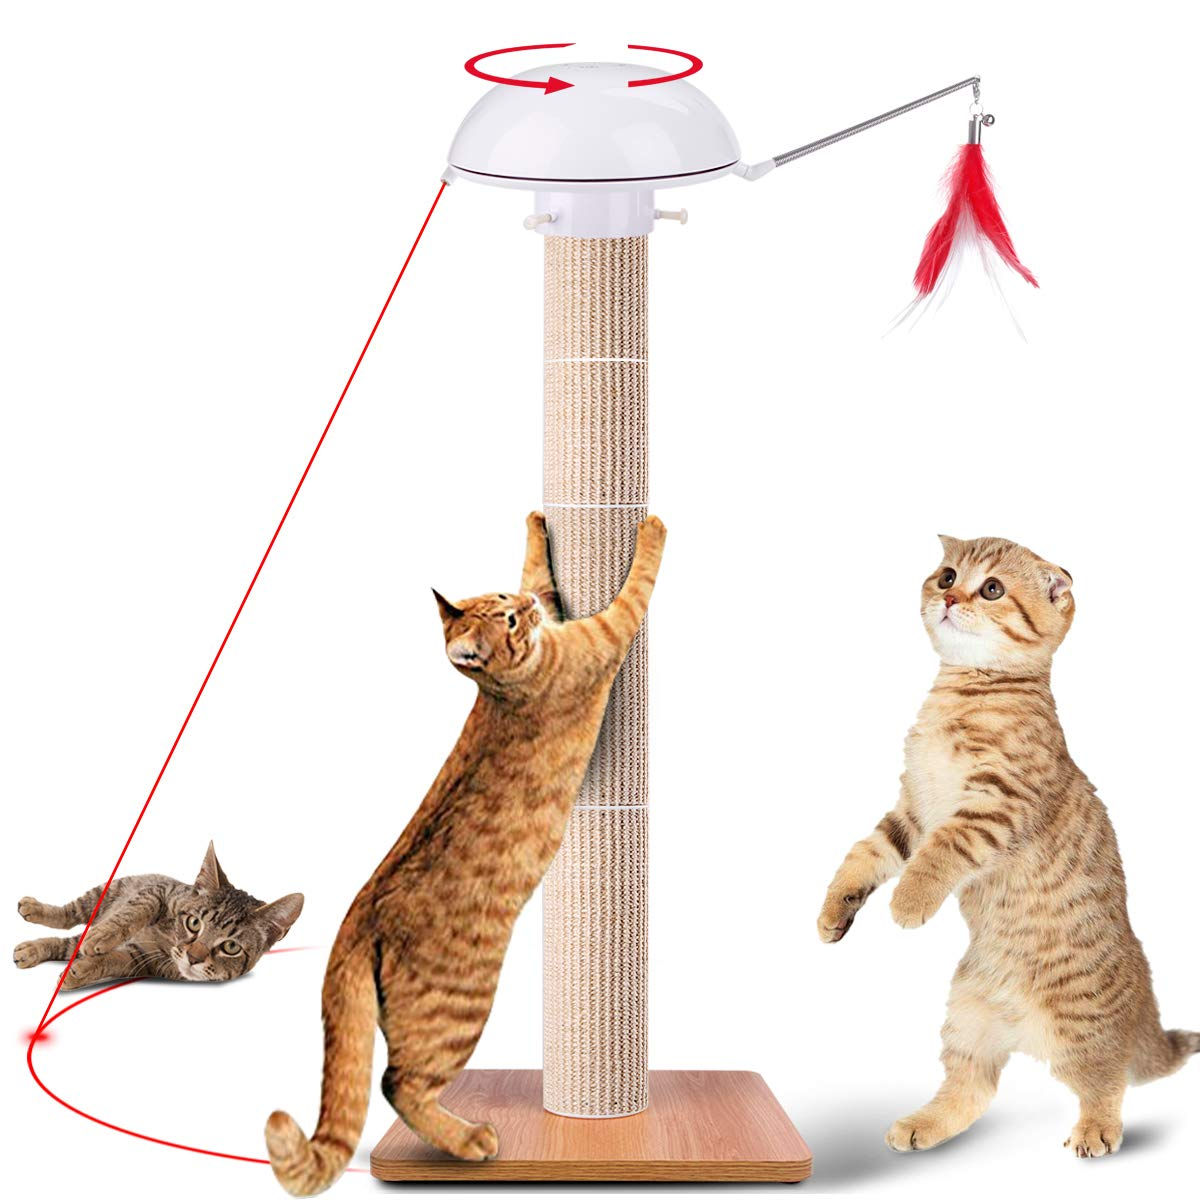 RundA Cat Scratching Post, 35 Inches Claw Scratch Collection Durable Cat Furniture, Cat and Kitten Tree with Detachable Sisal Poles and 2 in 1 Auto Rotating Light and Feather Cat Toy by RundA